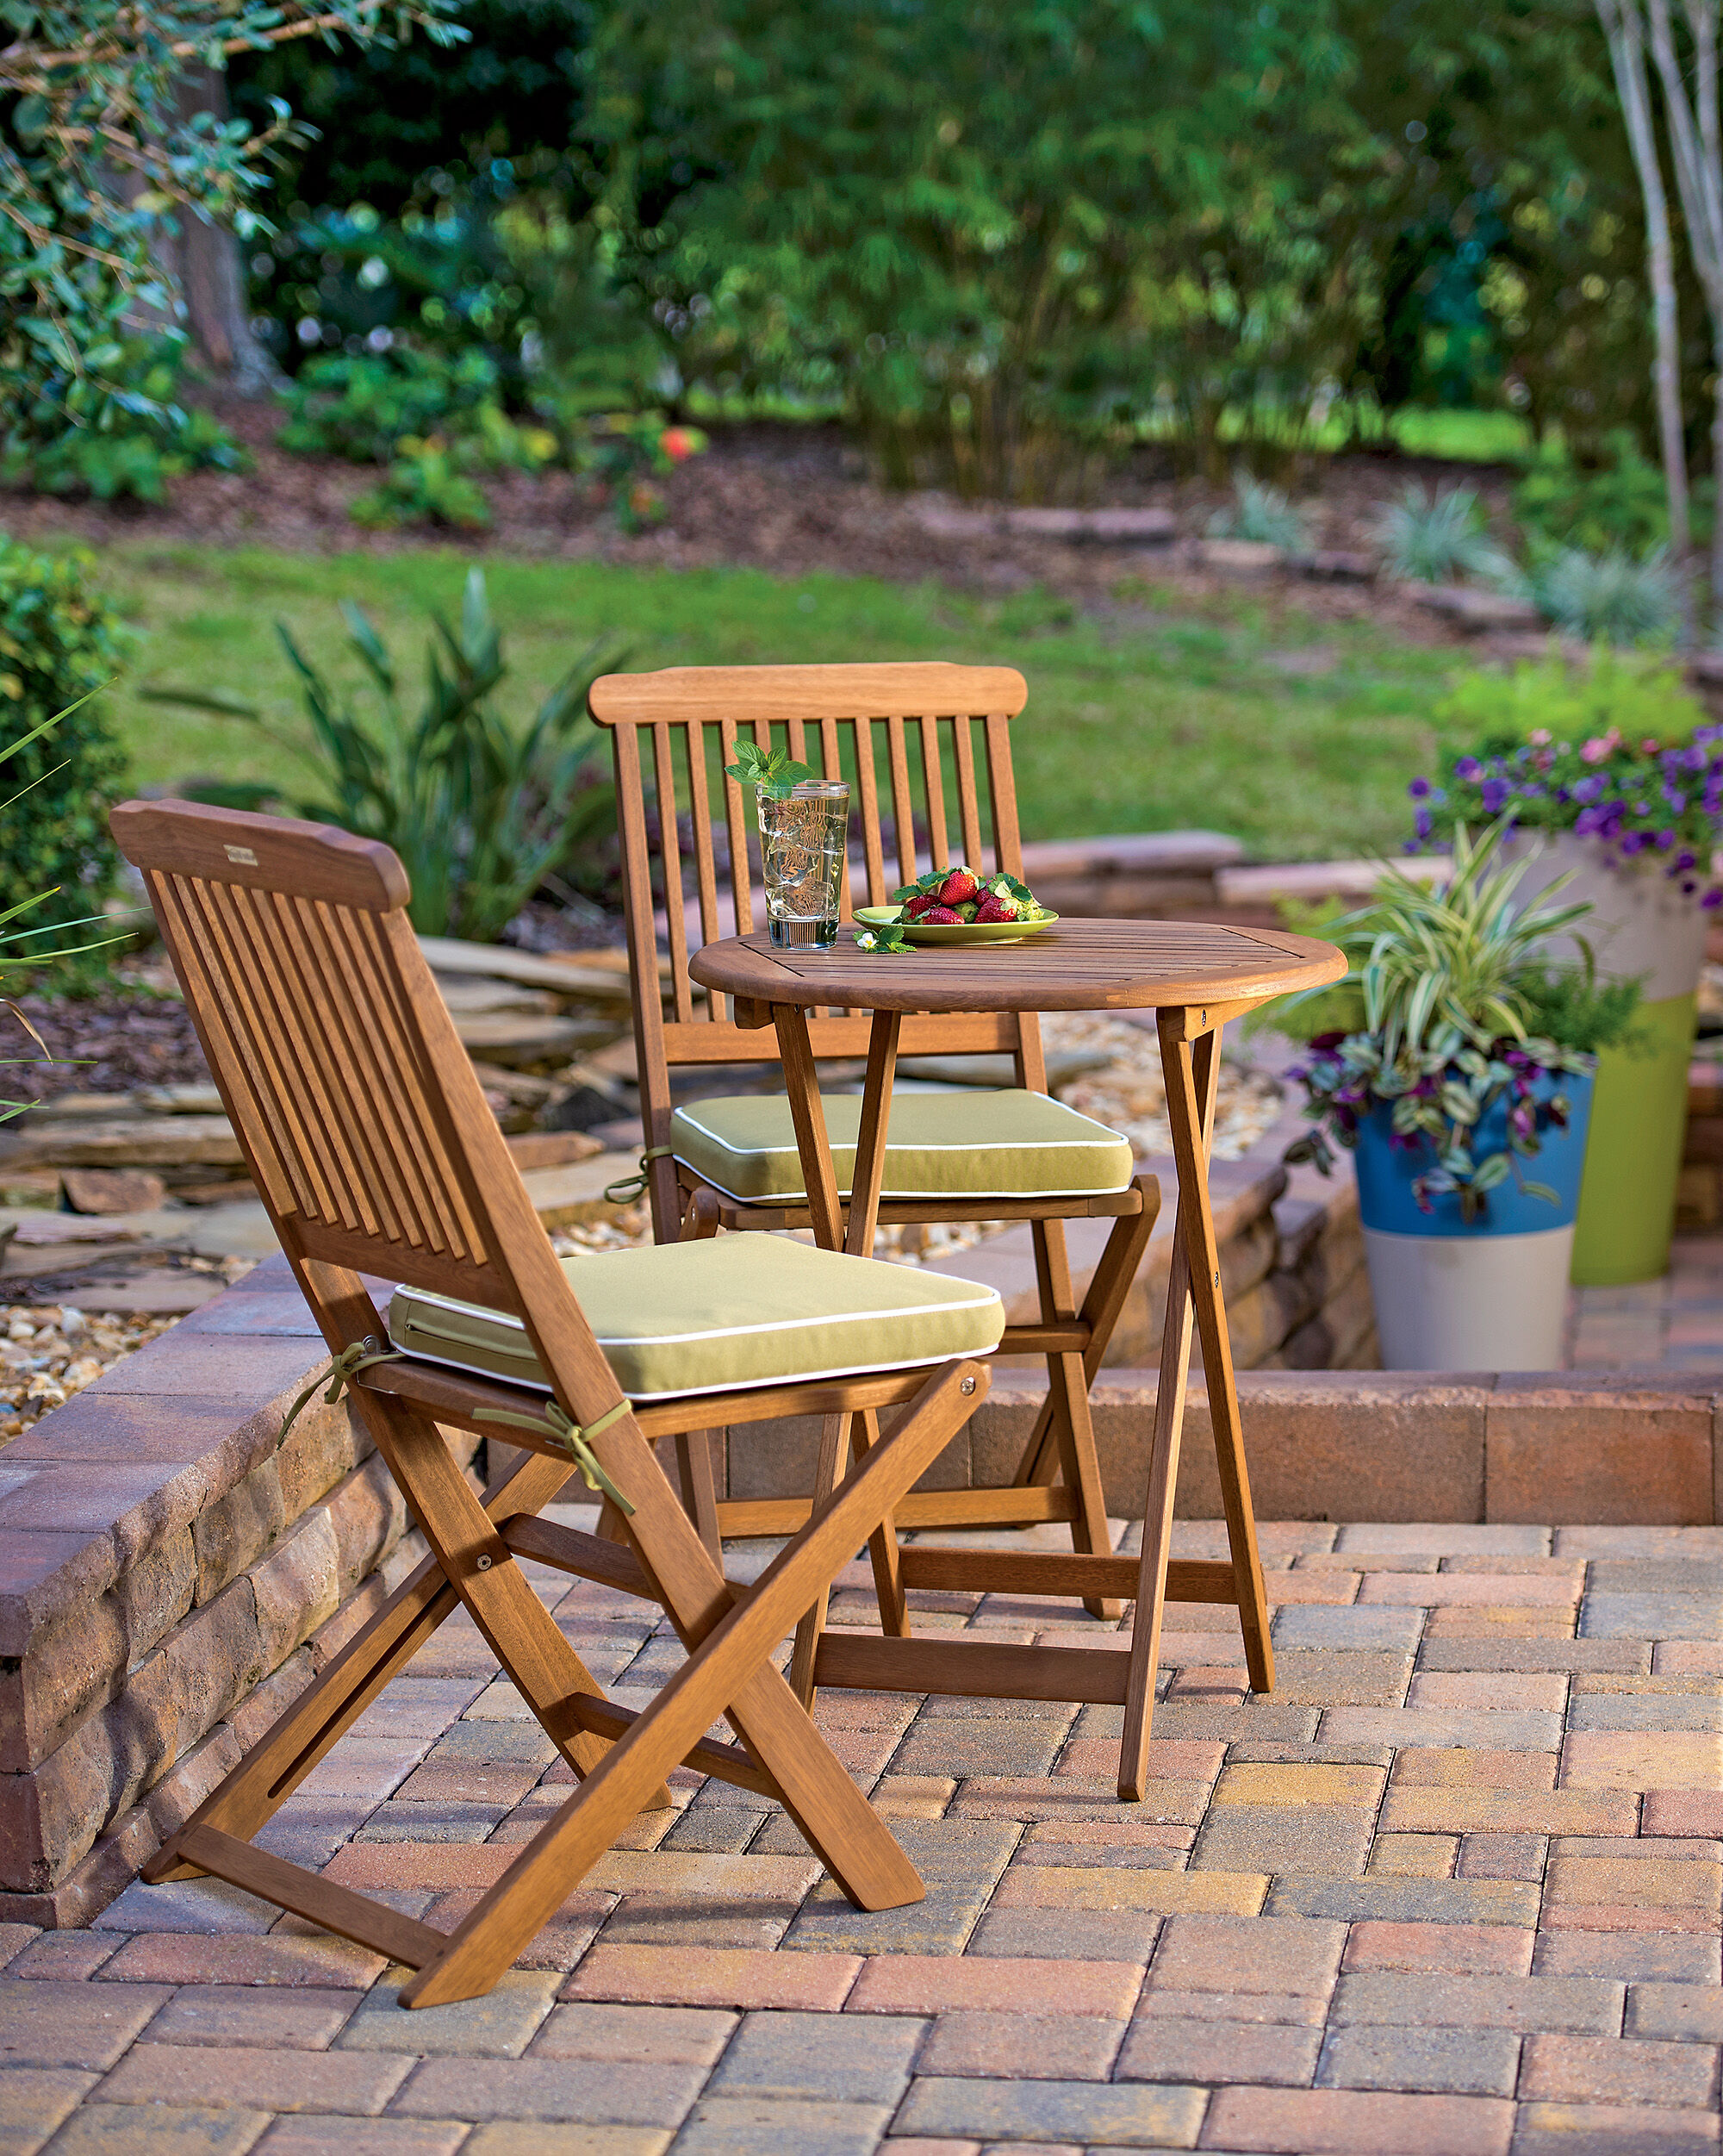 3-piece Bistro Set - Folding Small Wood